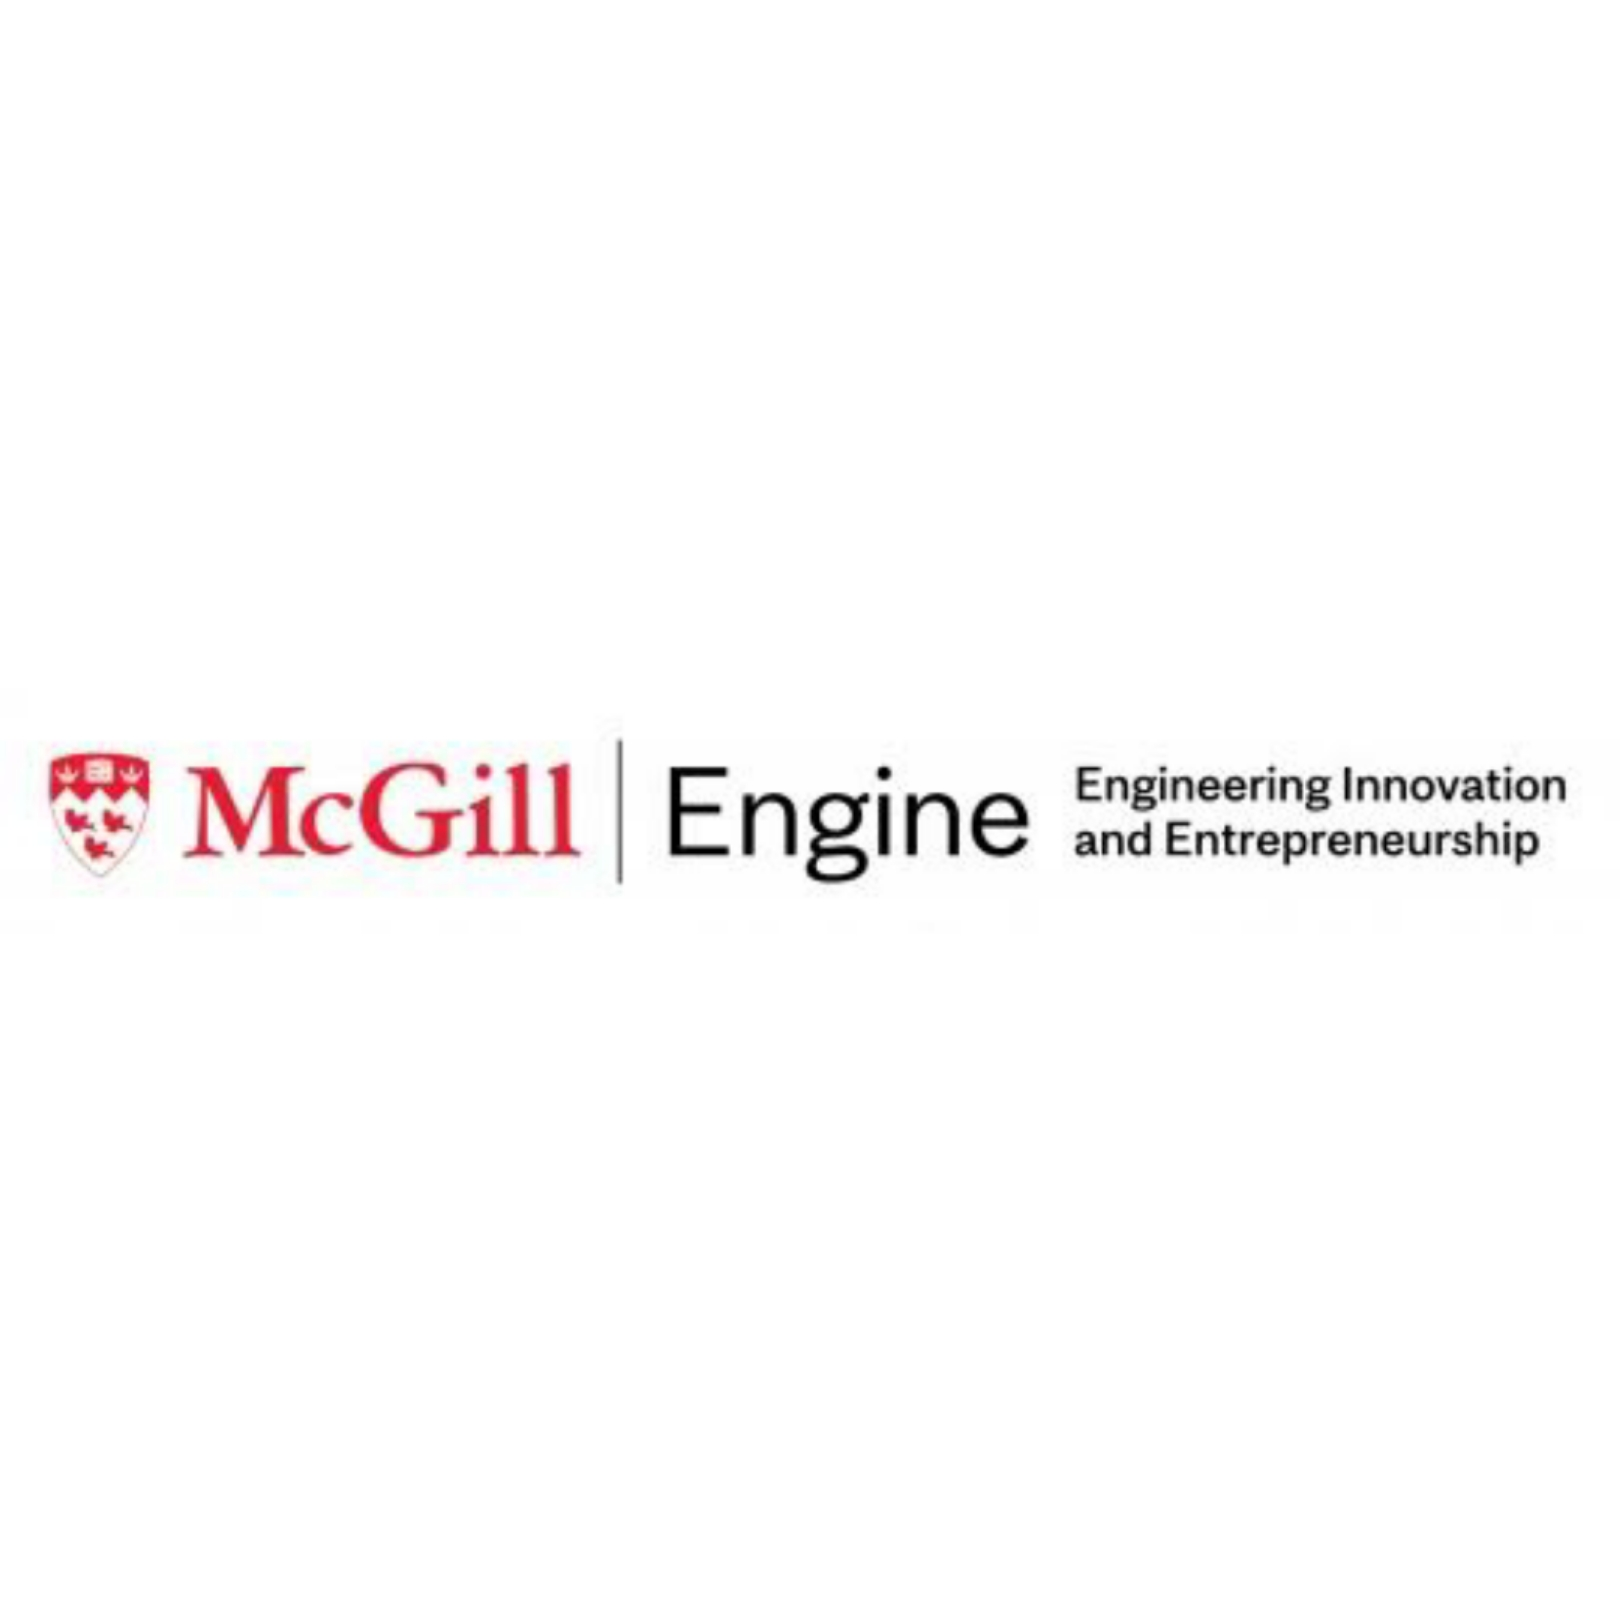 Mcgill Engine